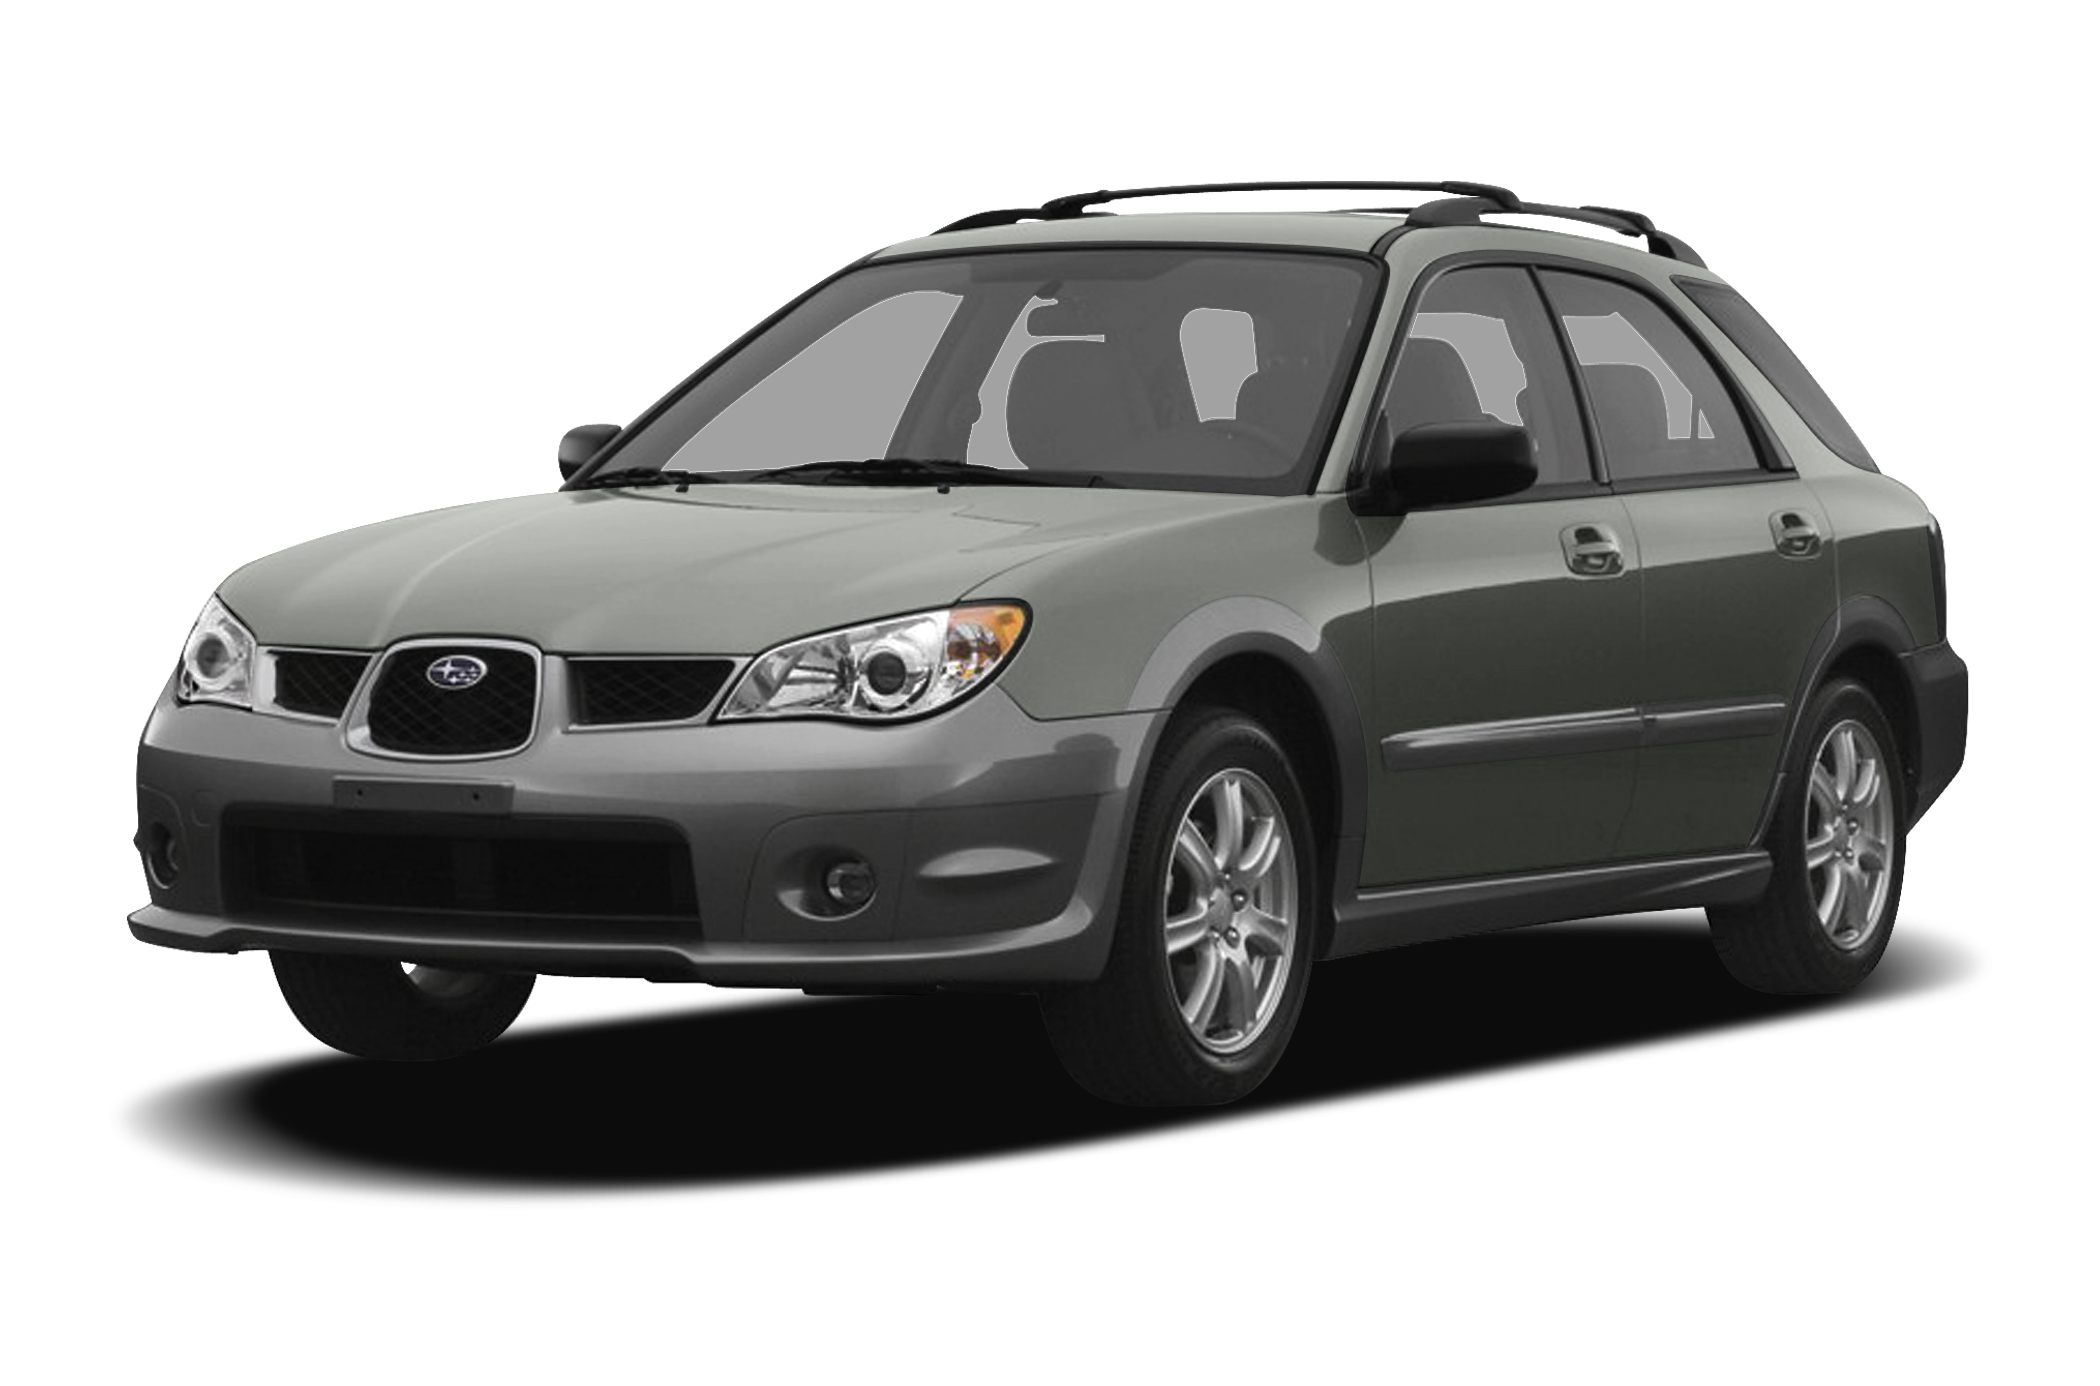 2007 Subaru Impreza Outback Sport Wagon Wagon for sale in Colchester for $7,996 with 63,559 miles.